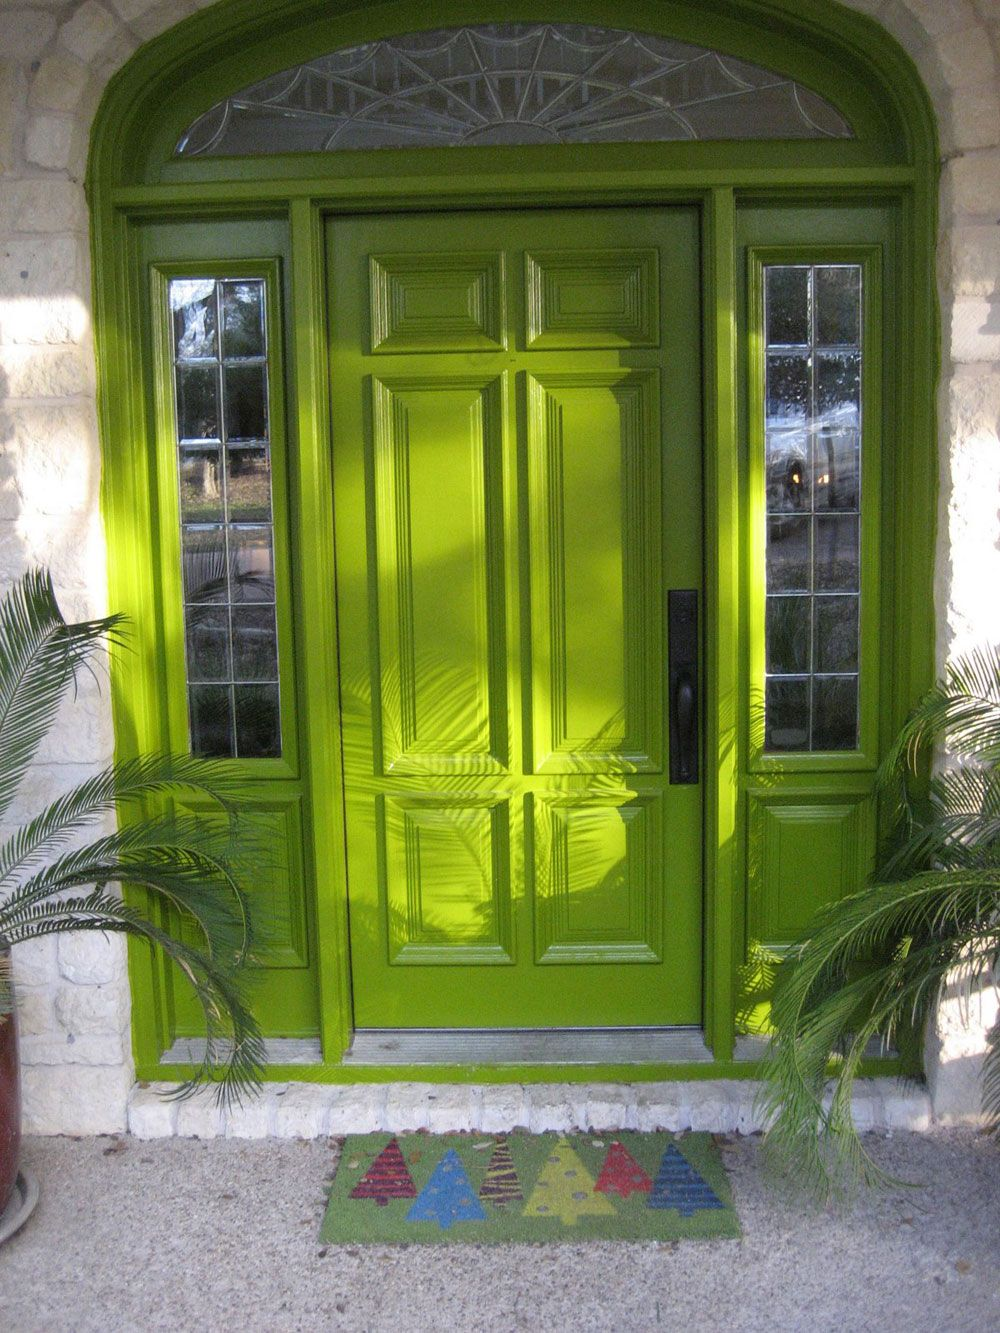 Feng shui outdoor shutter colors exterior choosing the front feng shui outdoor shutter colors exterior choosing the front door colors based on feng rubansaba